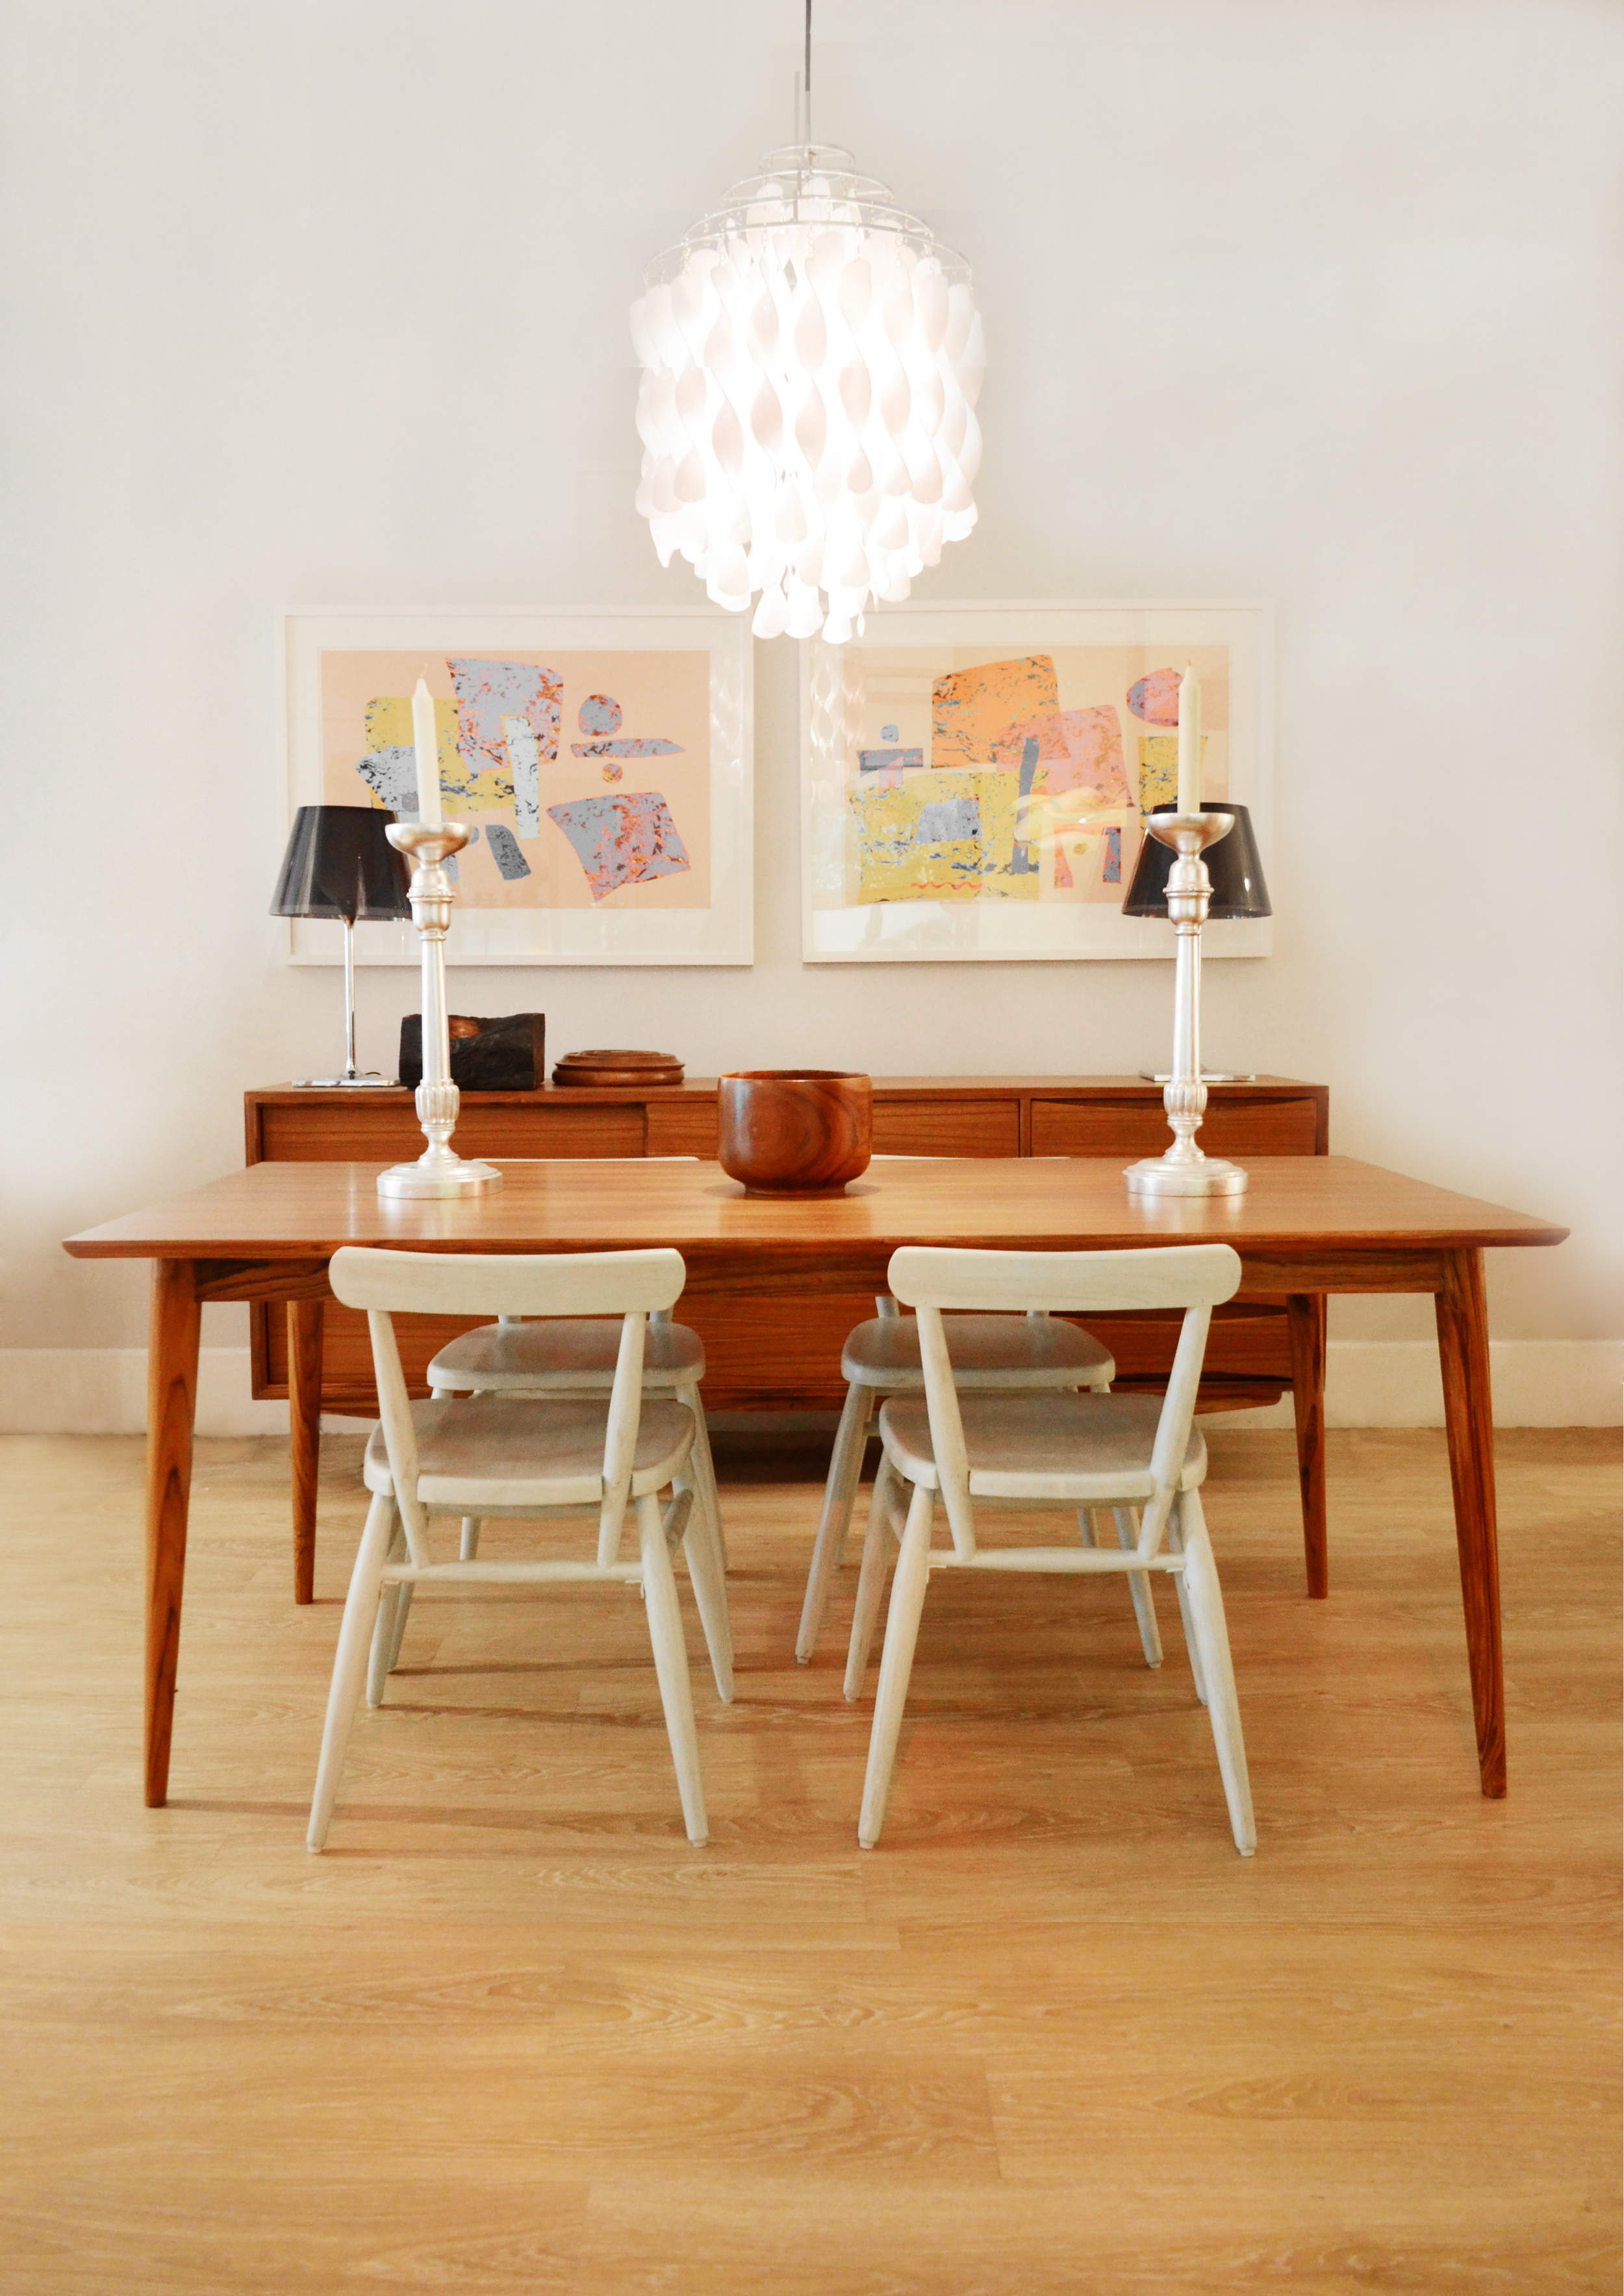 Retro Table and Chairs.jpg